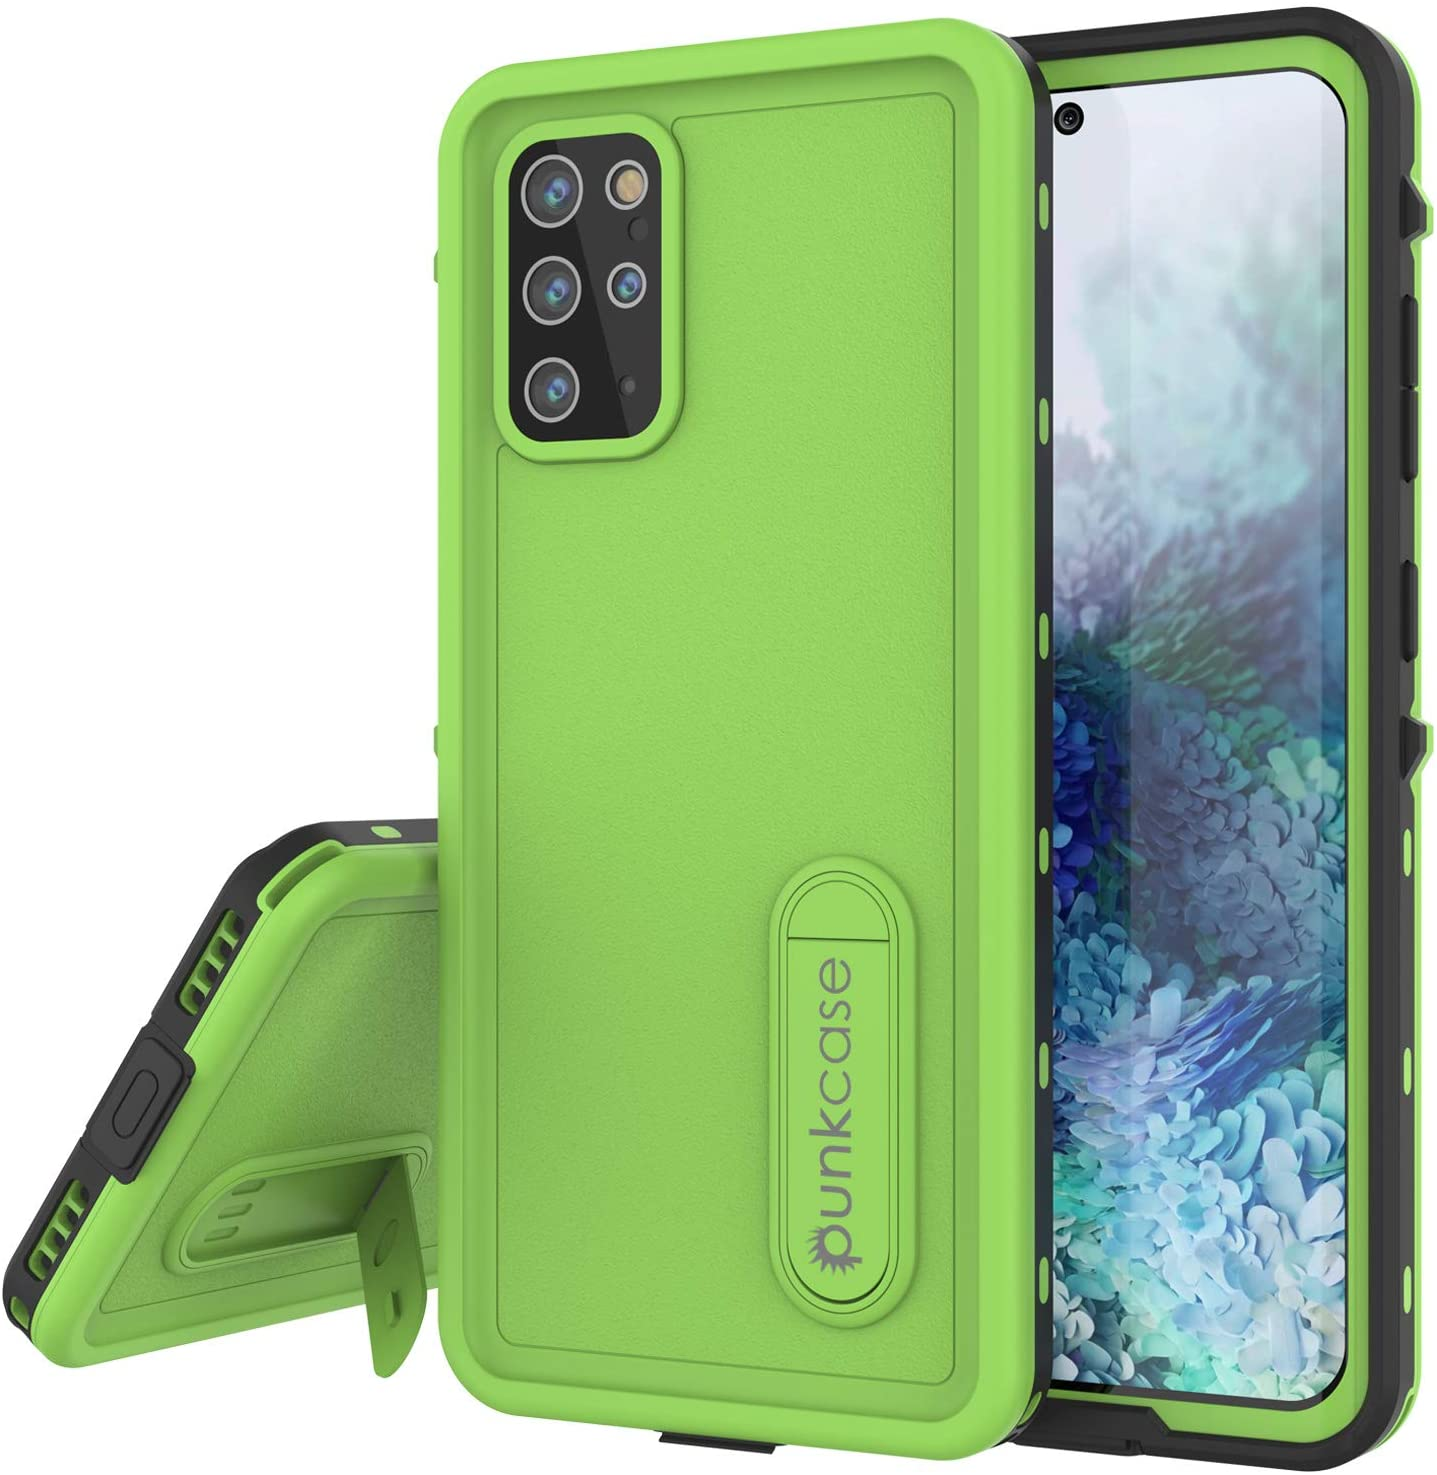 Galaxy S20+ Plus Waterproof Case, Punkcase [KickStud Series] Armor Cover [Light Green]